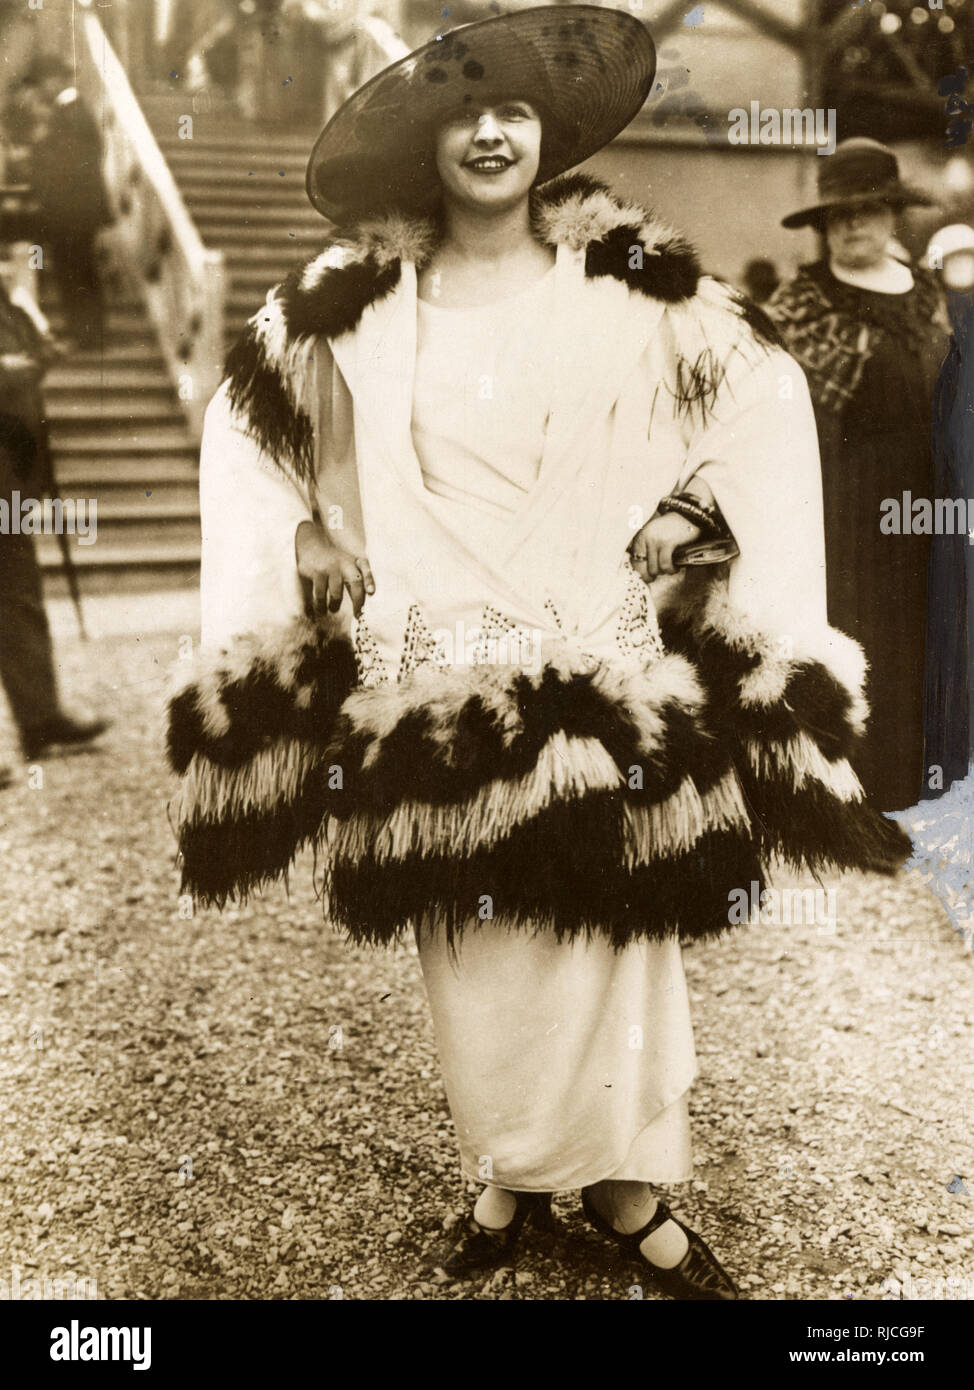 1923 Fashion - Remarkable feather and fur-trimmed outfit - at Ascot Races, Berkshire. - Stock Image